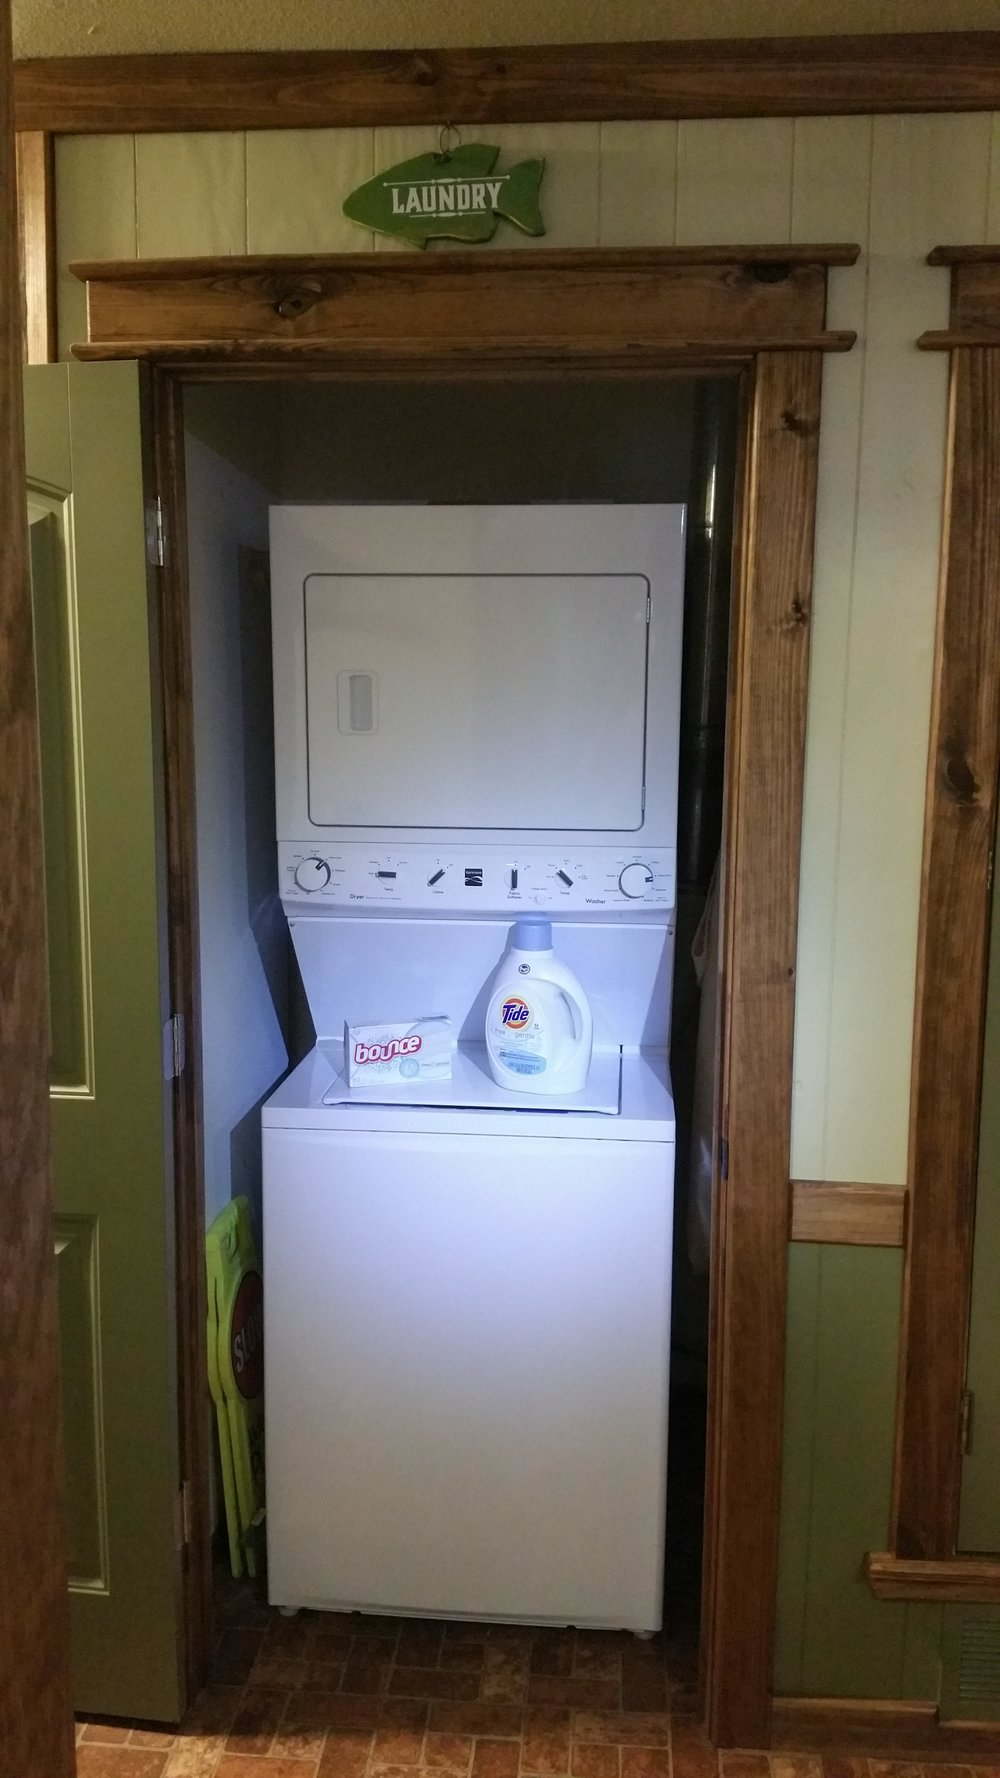 L2 Washer Dryer.jpg